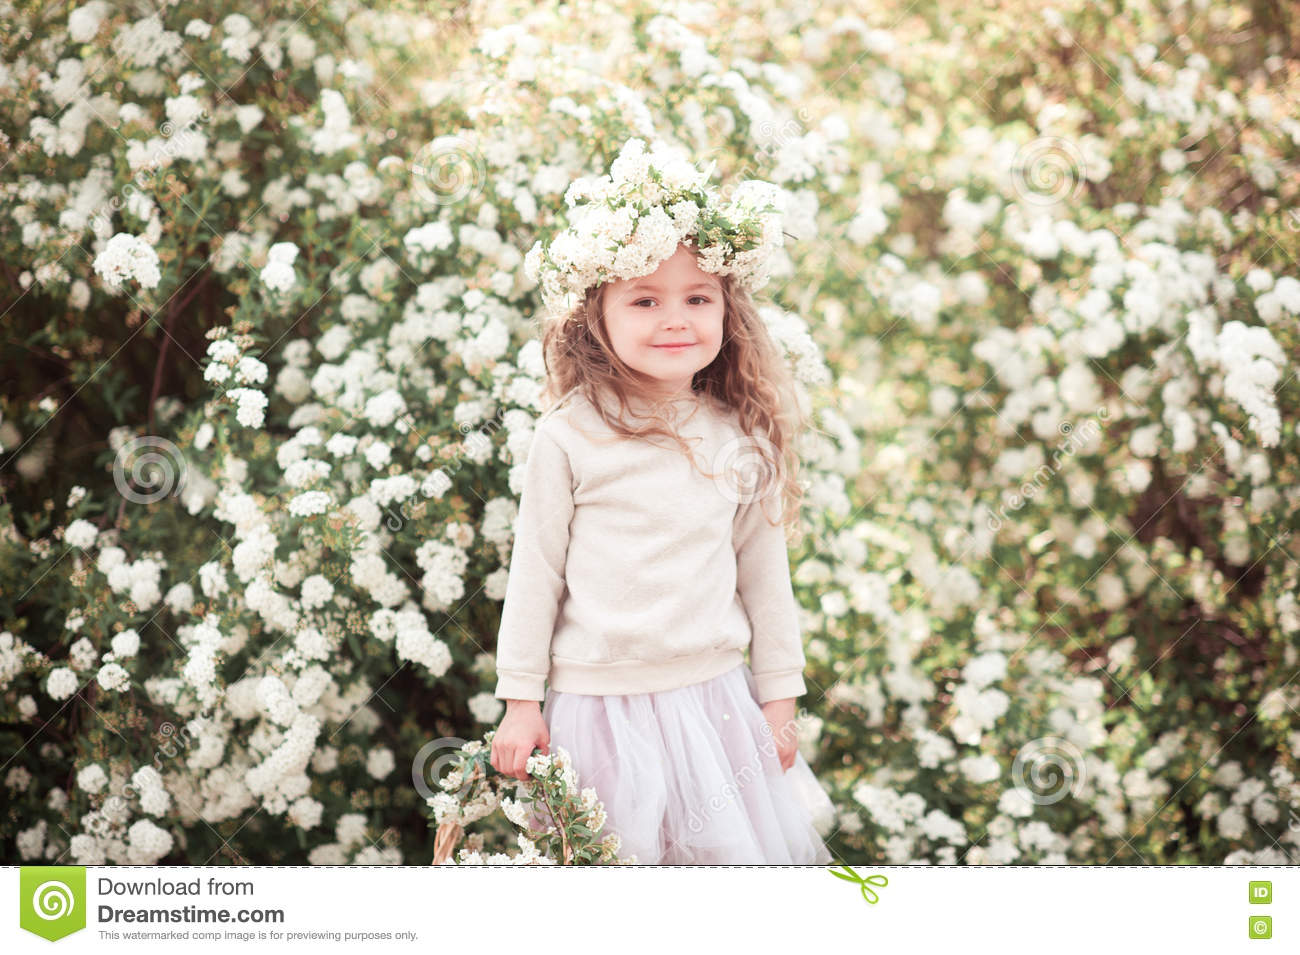 smiling baby girl with flowers in garden stock photo - image of